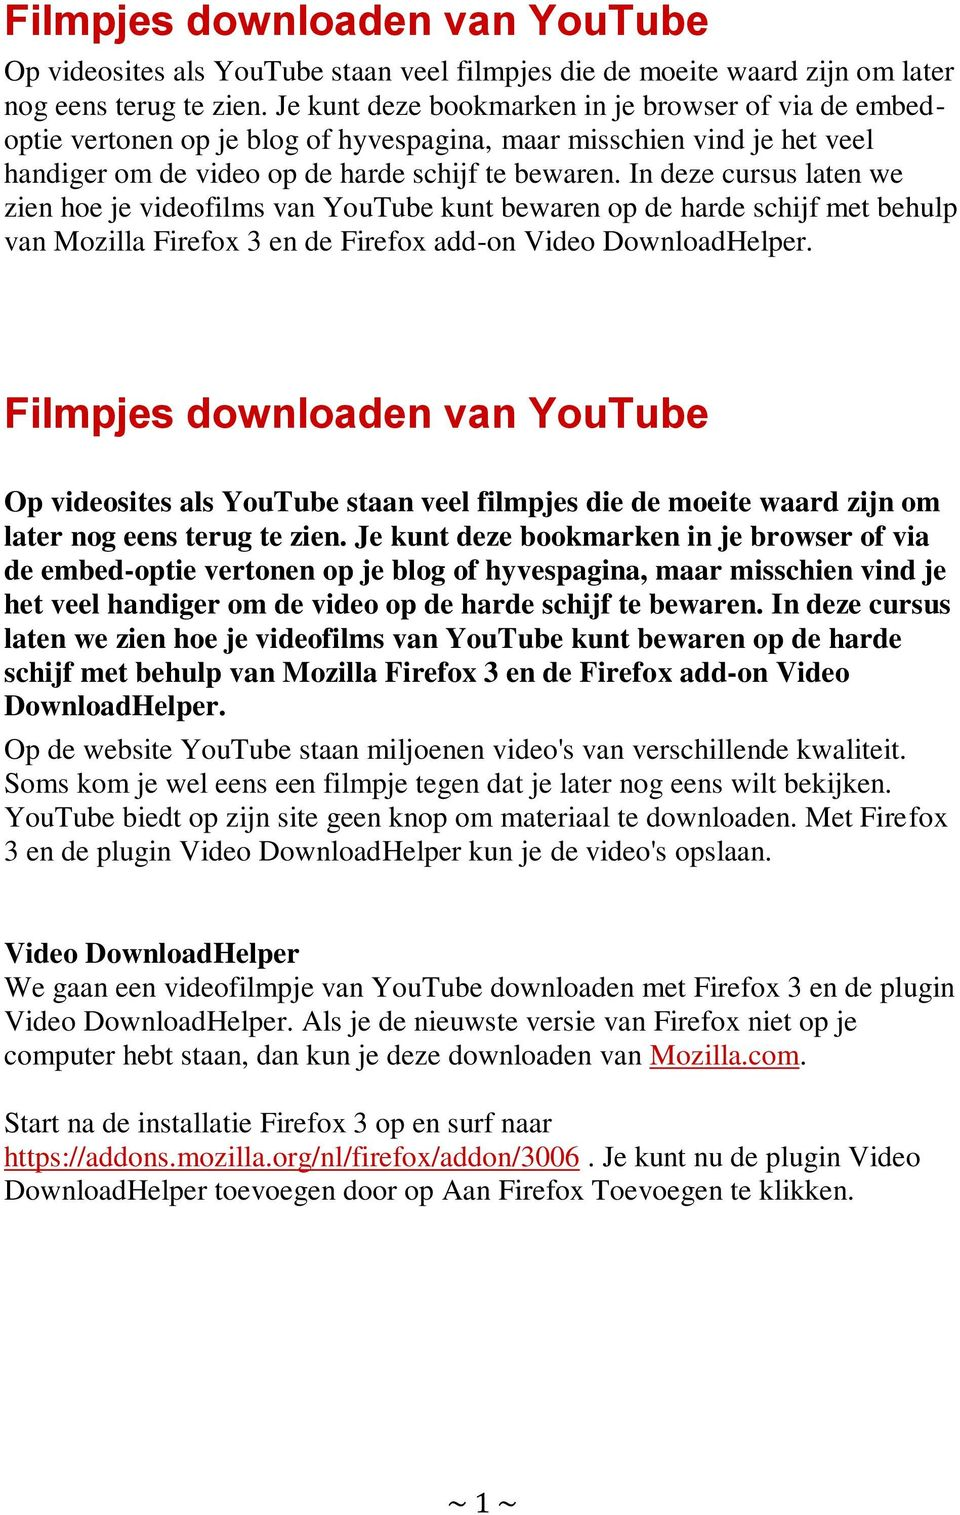 In deze cursus laten we zien hoe je videofilms van YouTube kunt bewaren op de harde schijf met behulp van Mozilla Firefox 3 en de Firefox add-on Video DownloadHelper.